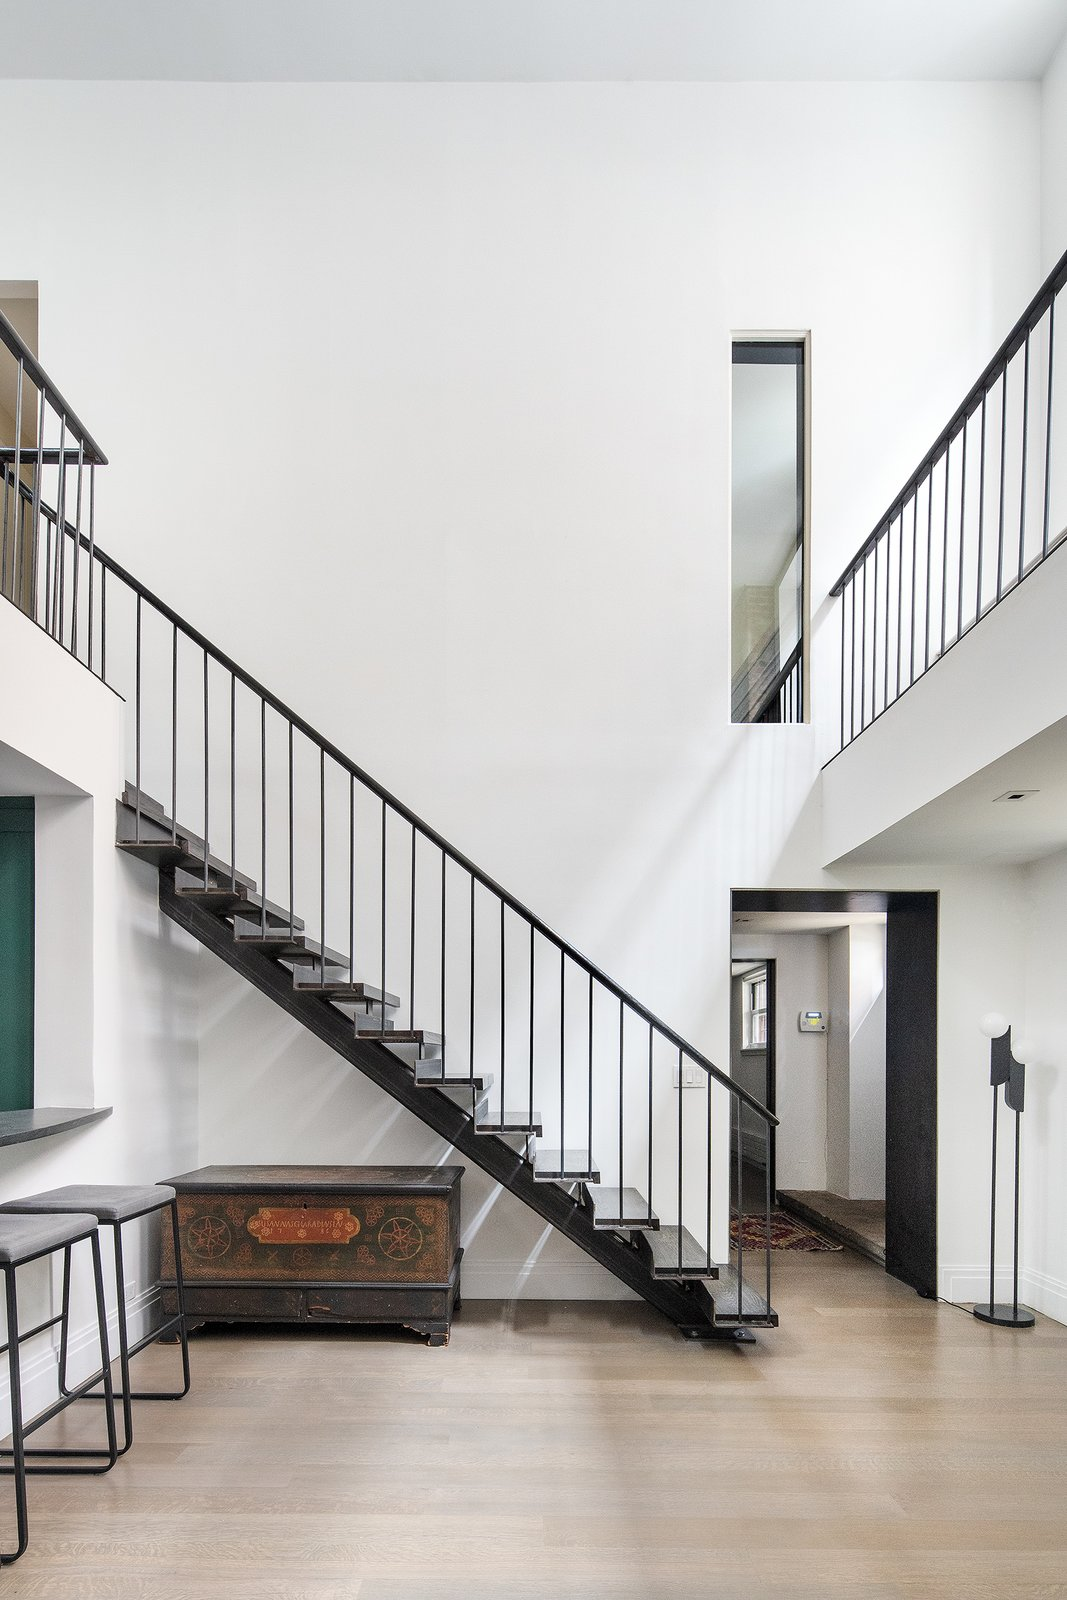 Staircase and Metal Railing Within the home, the ceiling heights range from 11 to 21 feet.     Photo 6 of 14 in An Updated 1845 Brooklyn Home Hits the Market at $2.95M